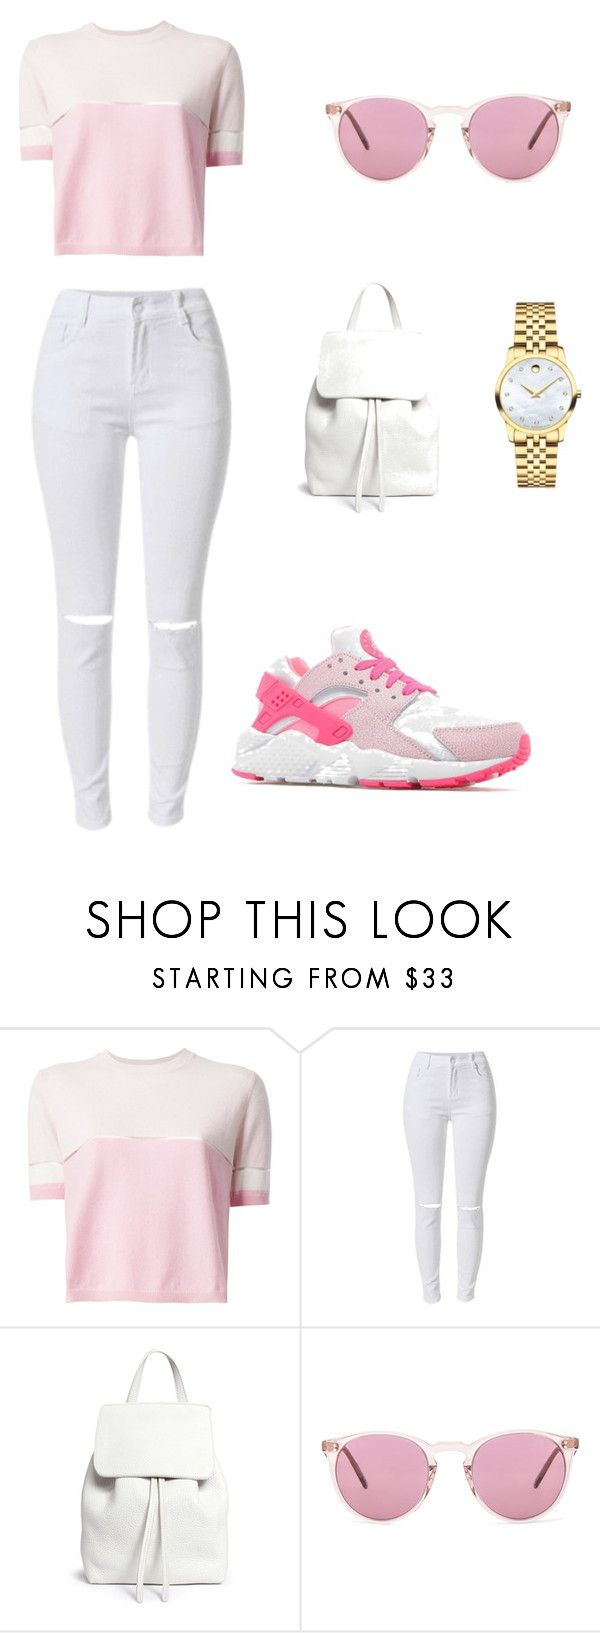 """Untitled #20"" by efemenauvo ❤ liked on Polyvore featuring Fendi, Mansur Gavriel, Oliver Peoples and Movado"